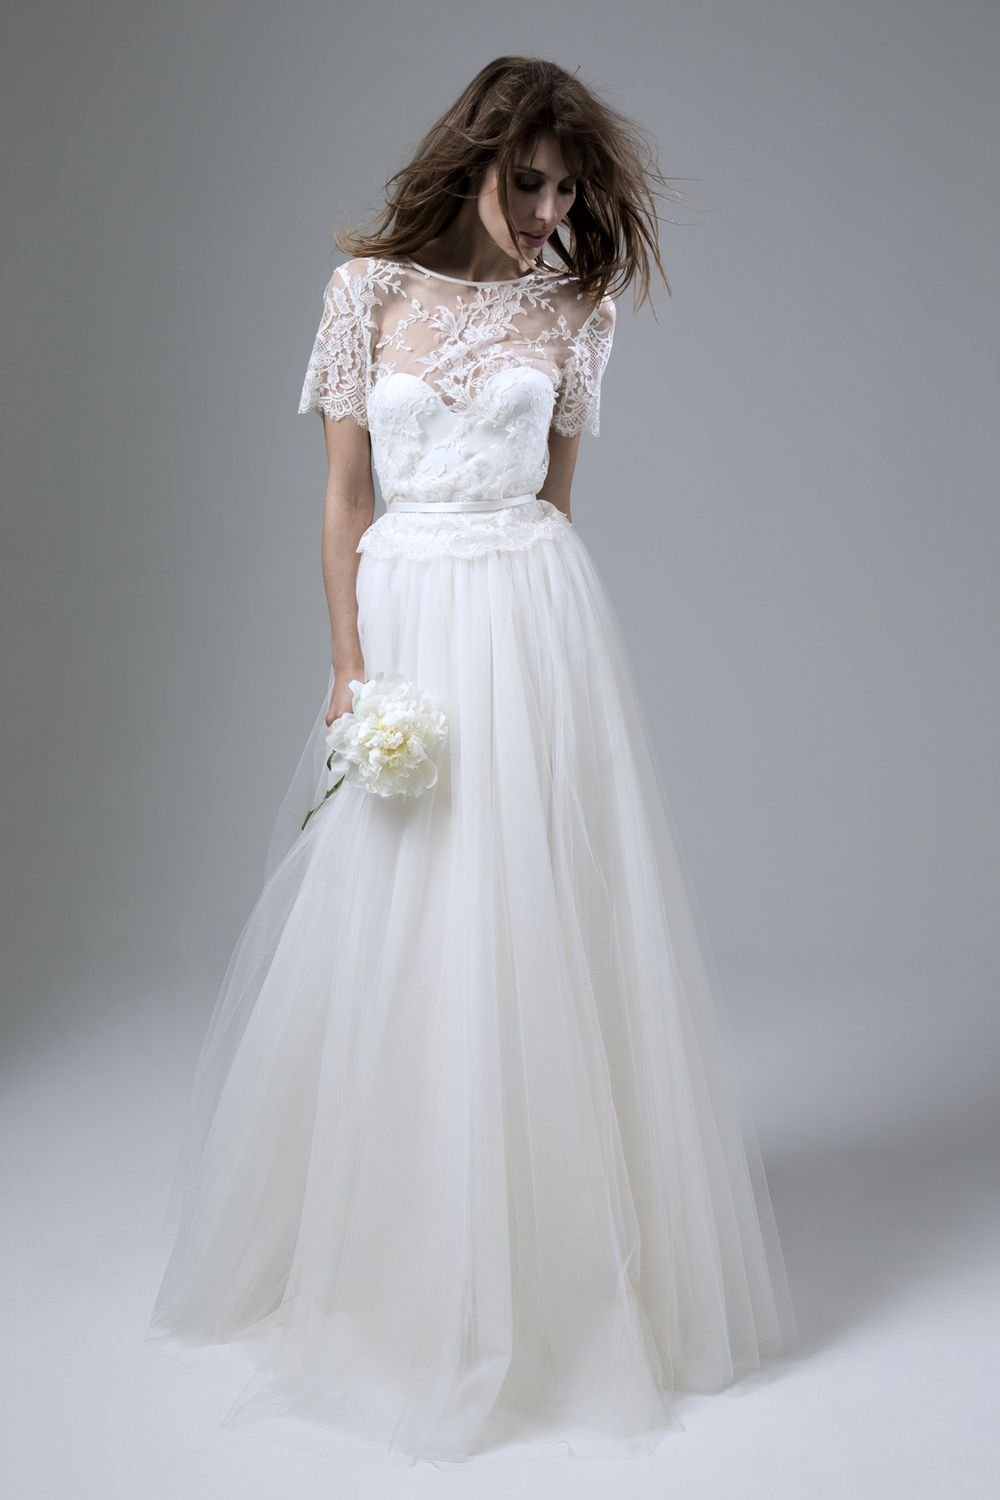 Ivory silk and lace wedding dress  Annabel u Dita  Our Dress of the Week  French lace Tulle skirts